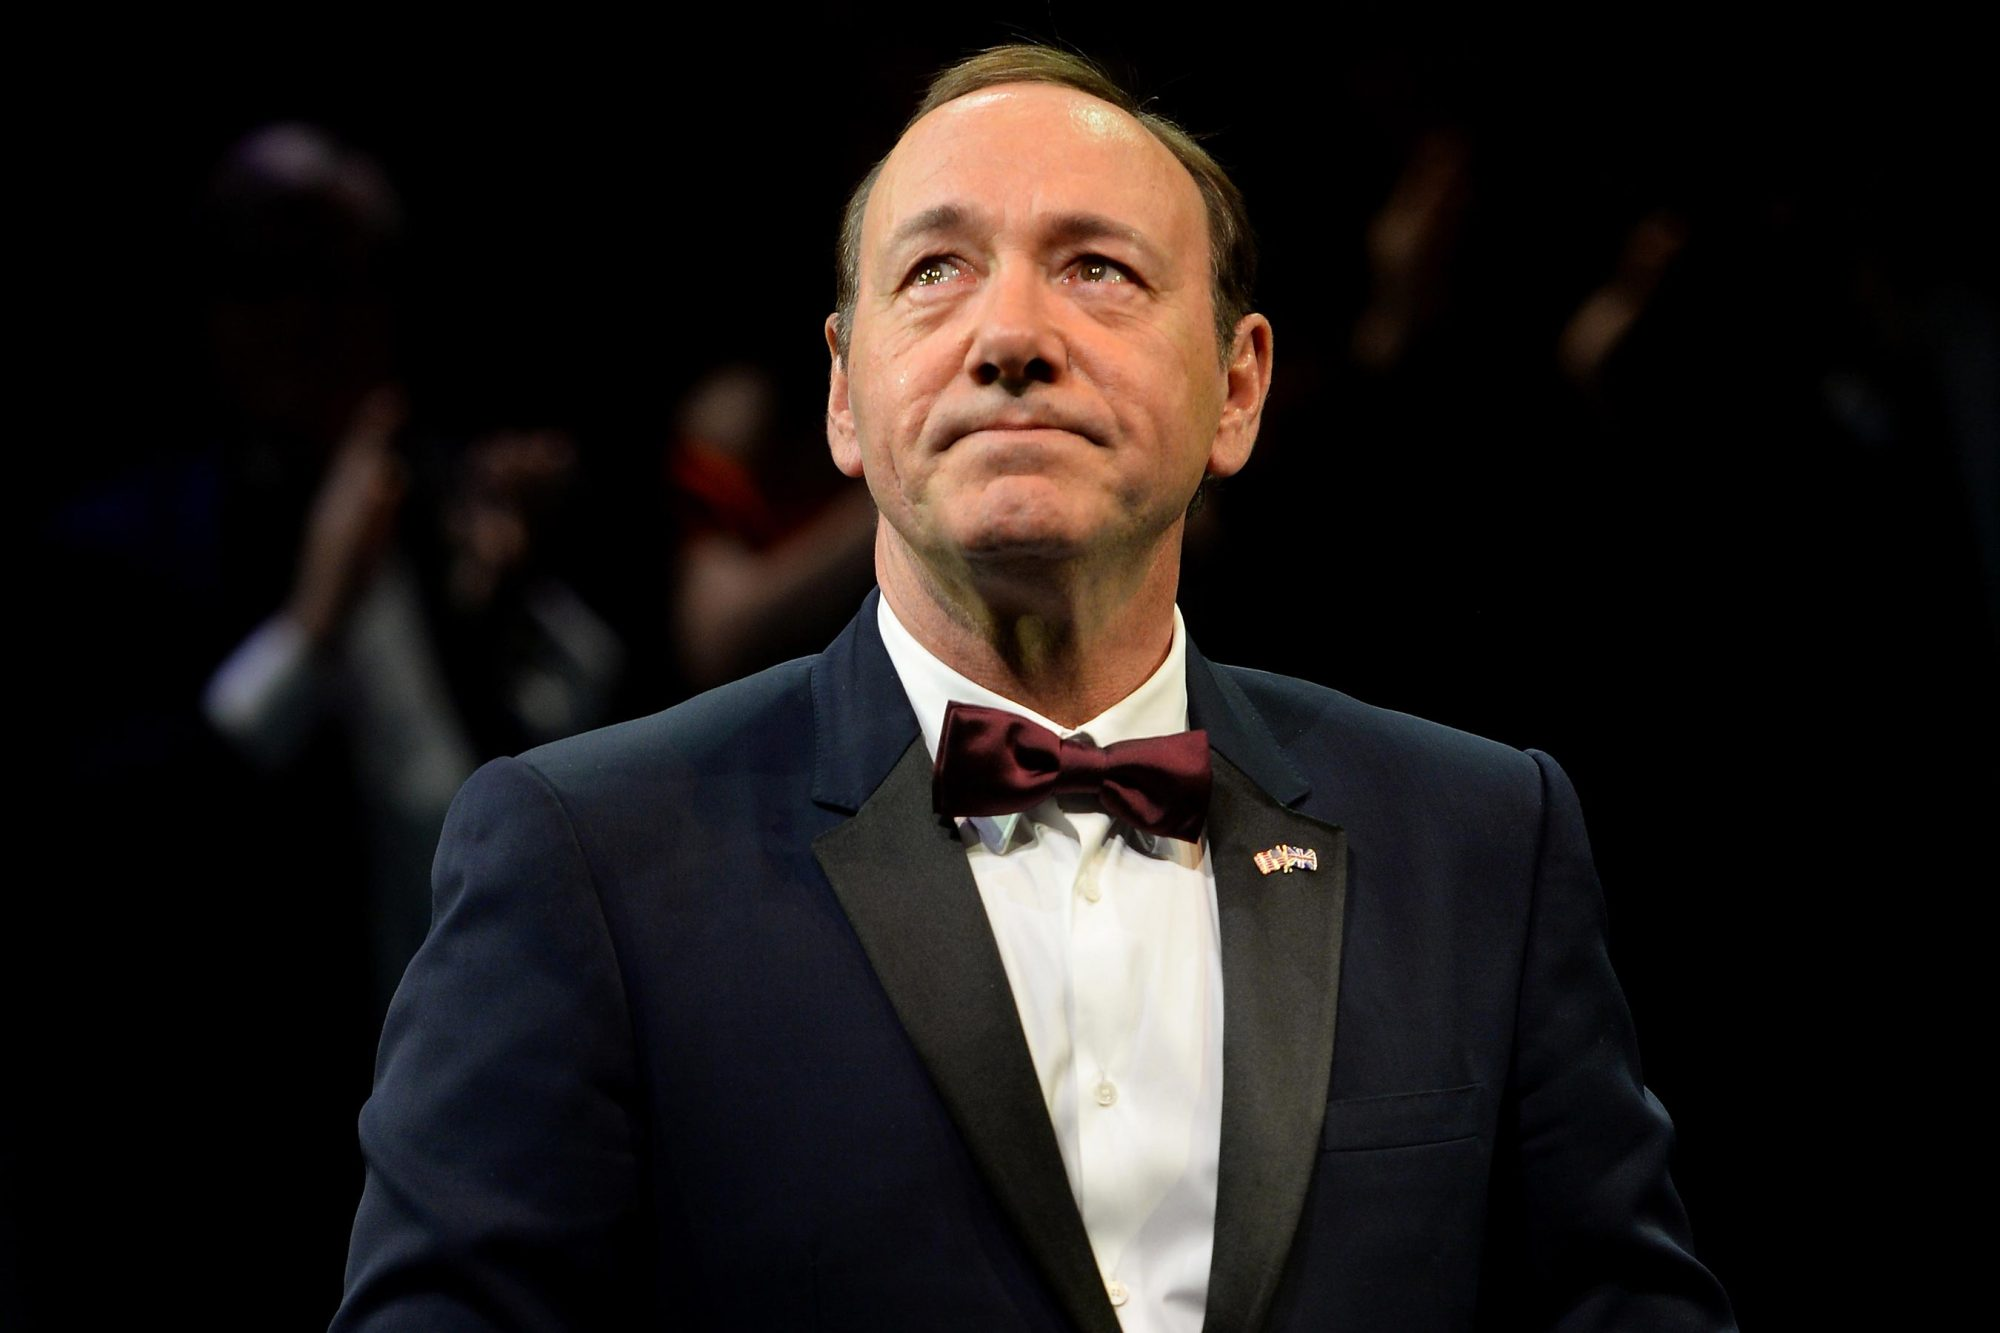 A Gala Celebration In Honour Of Kevin Spacey At The Old Vic - Inside